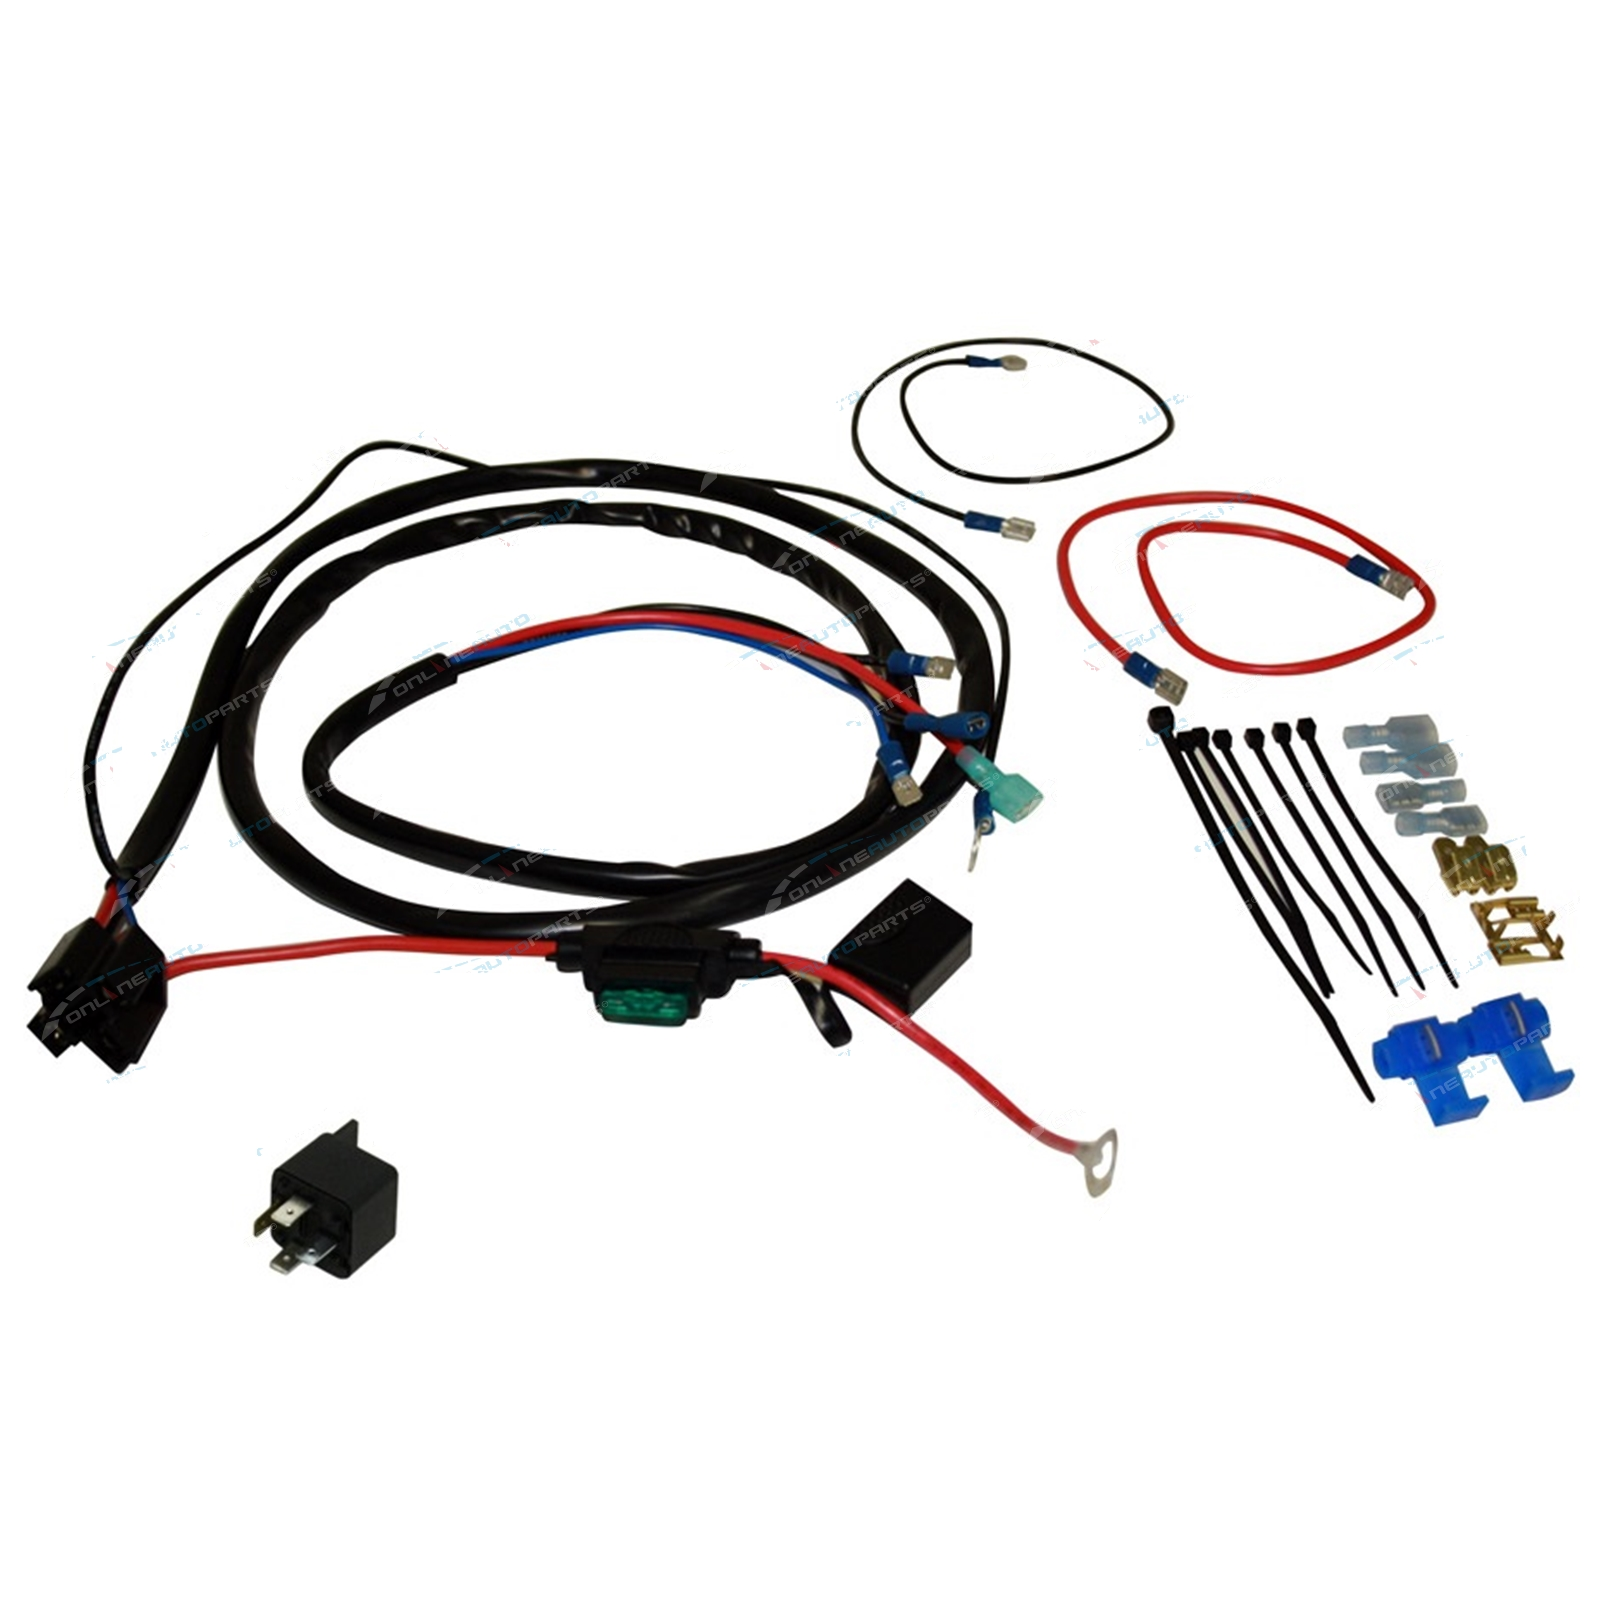 Basic horn or l wiring kit air electric car bike truck incl new relay fuse